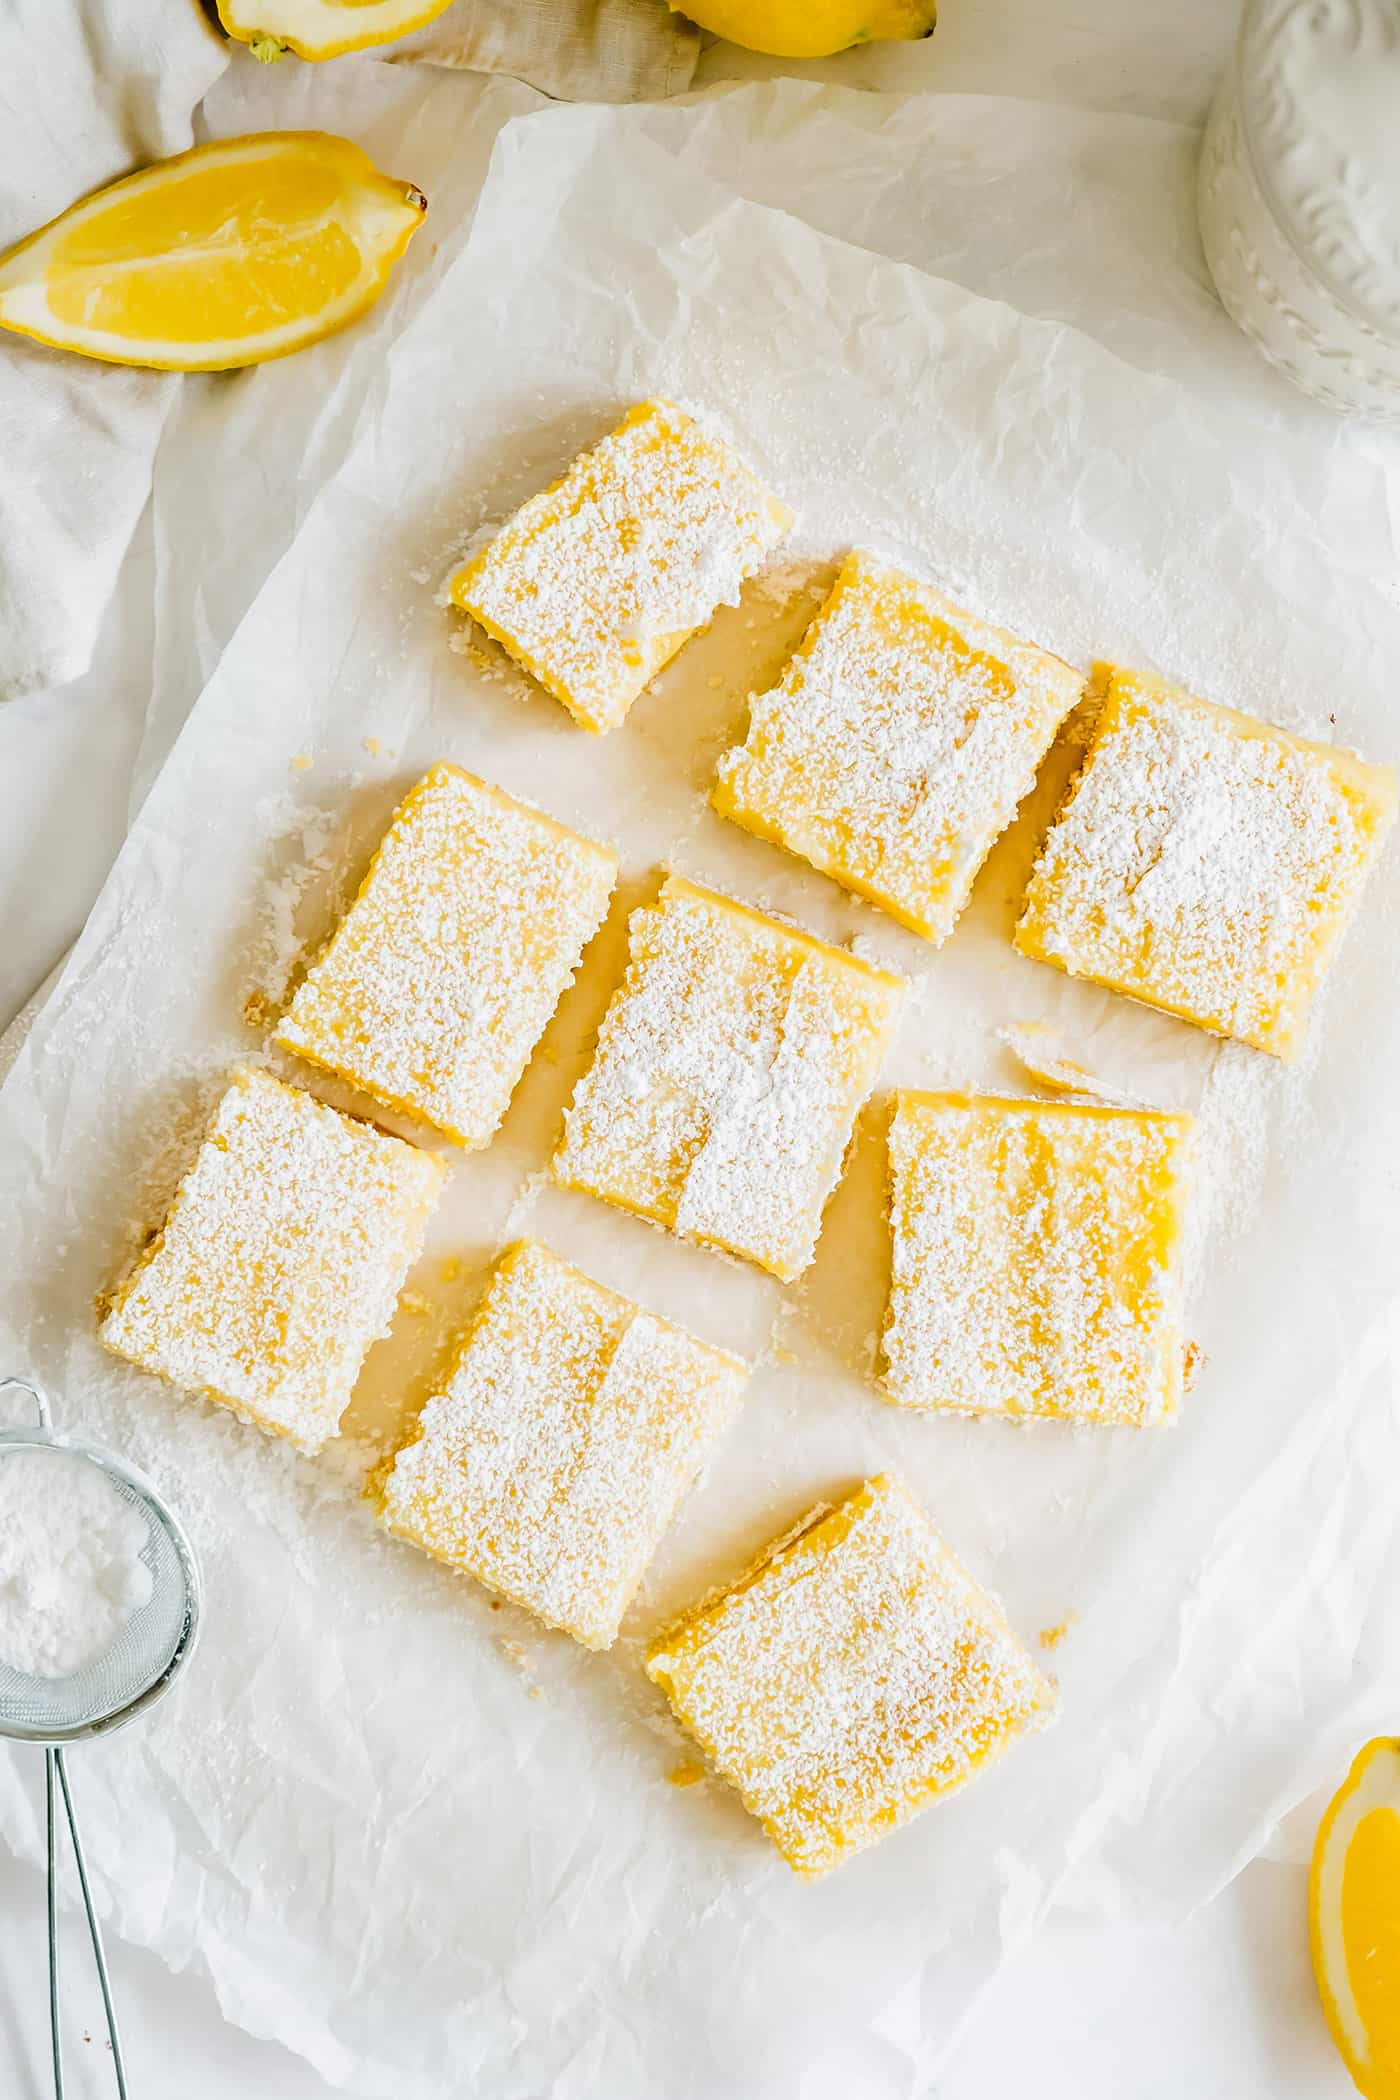 Lemon bars cut and sprinkled with powdered sugar, on a piece of white parchment paper